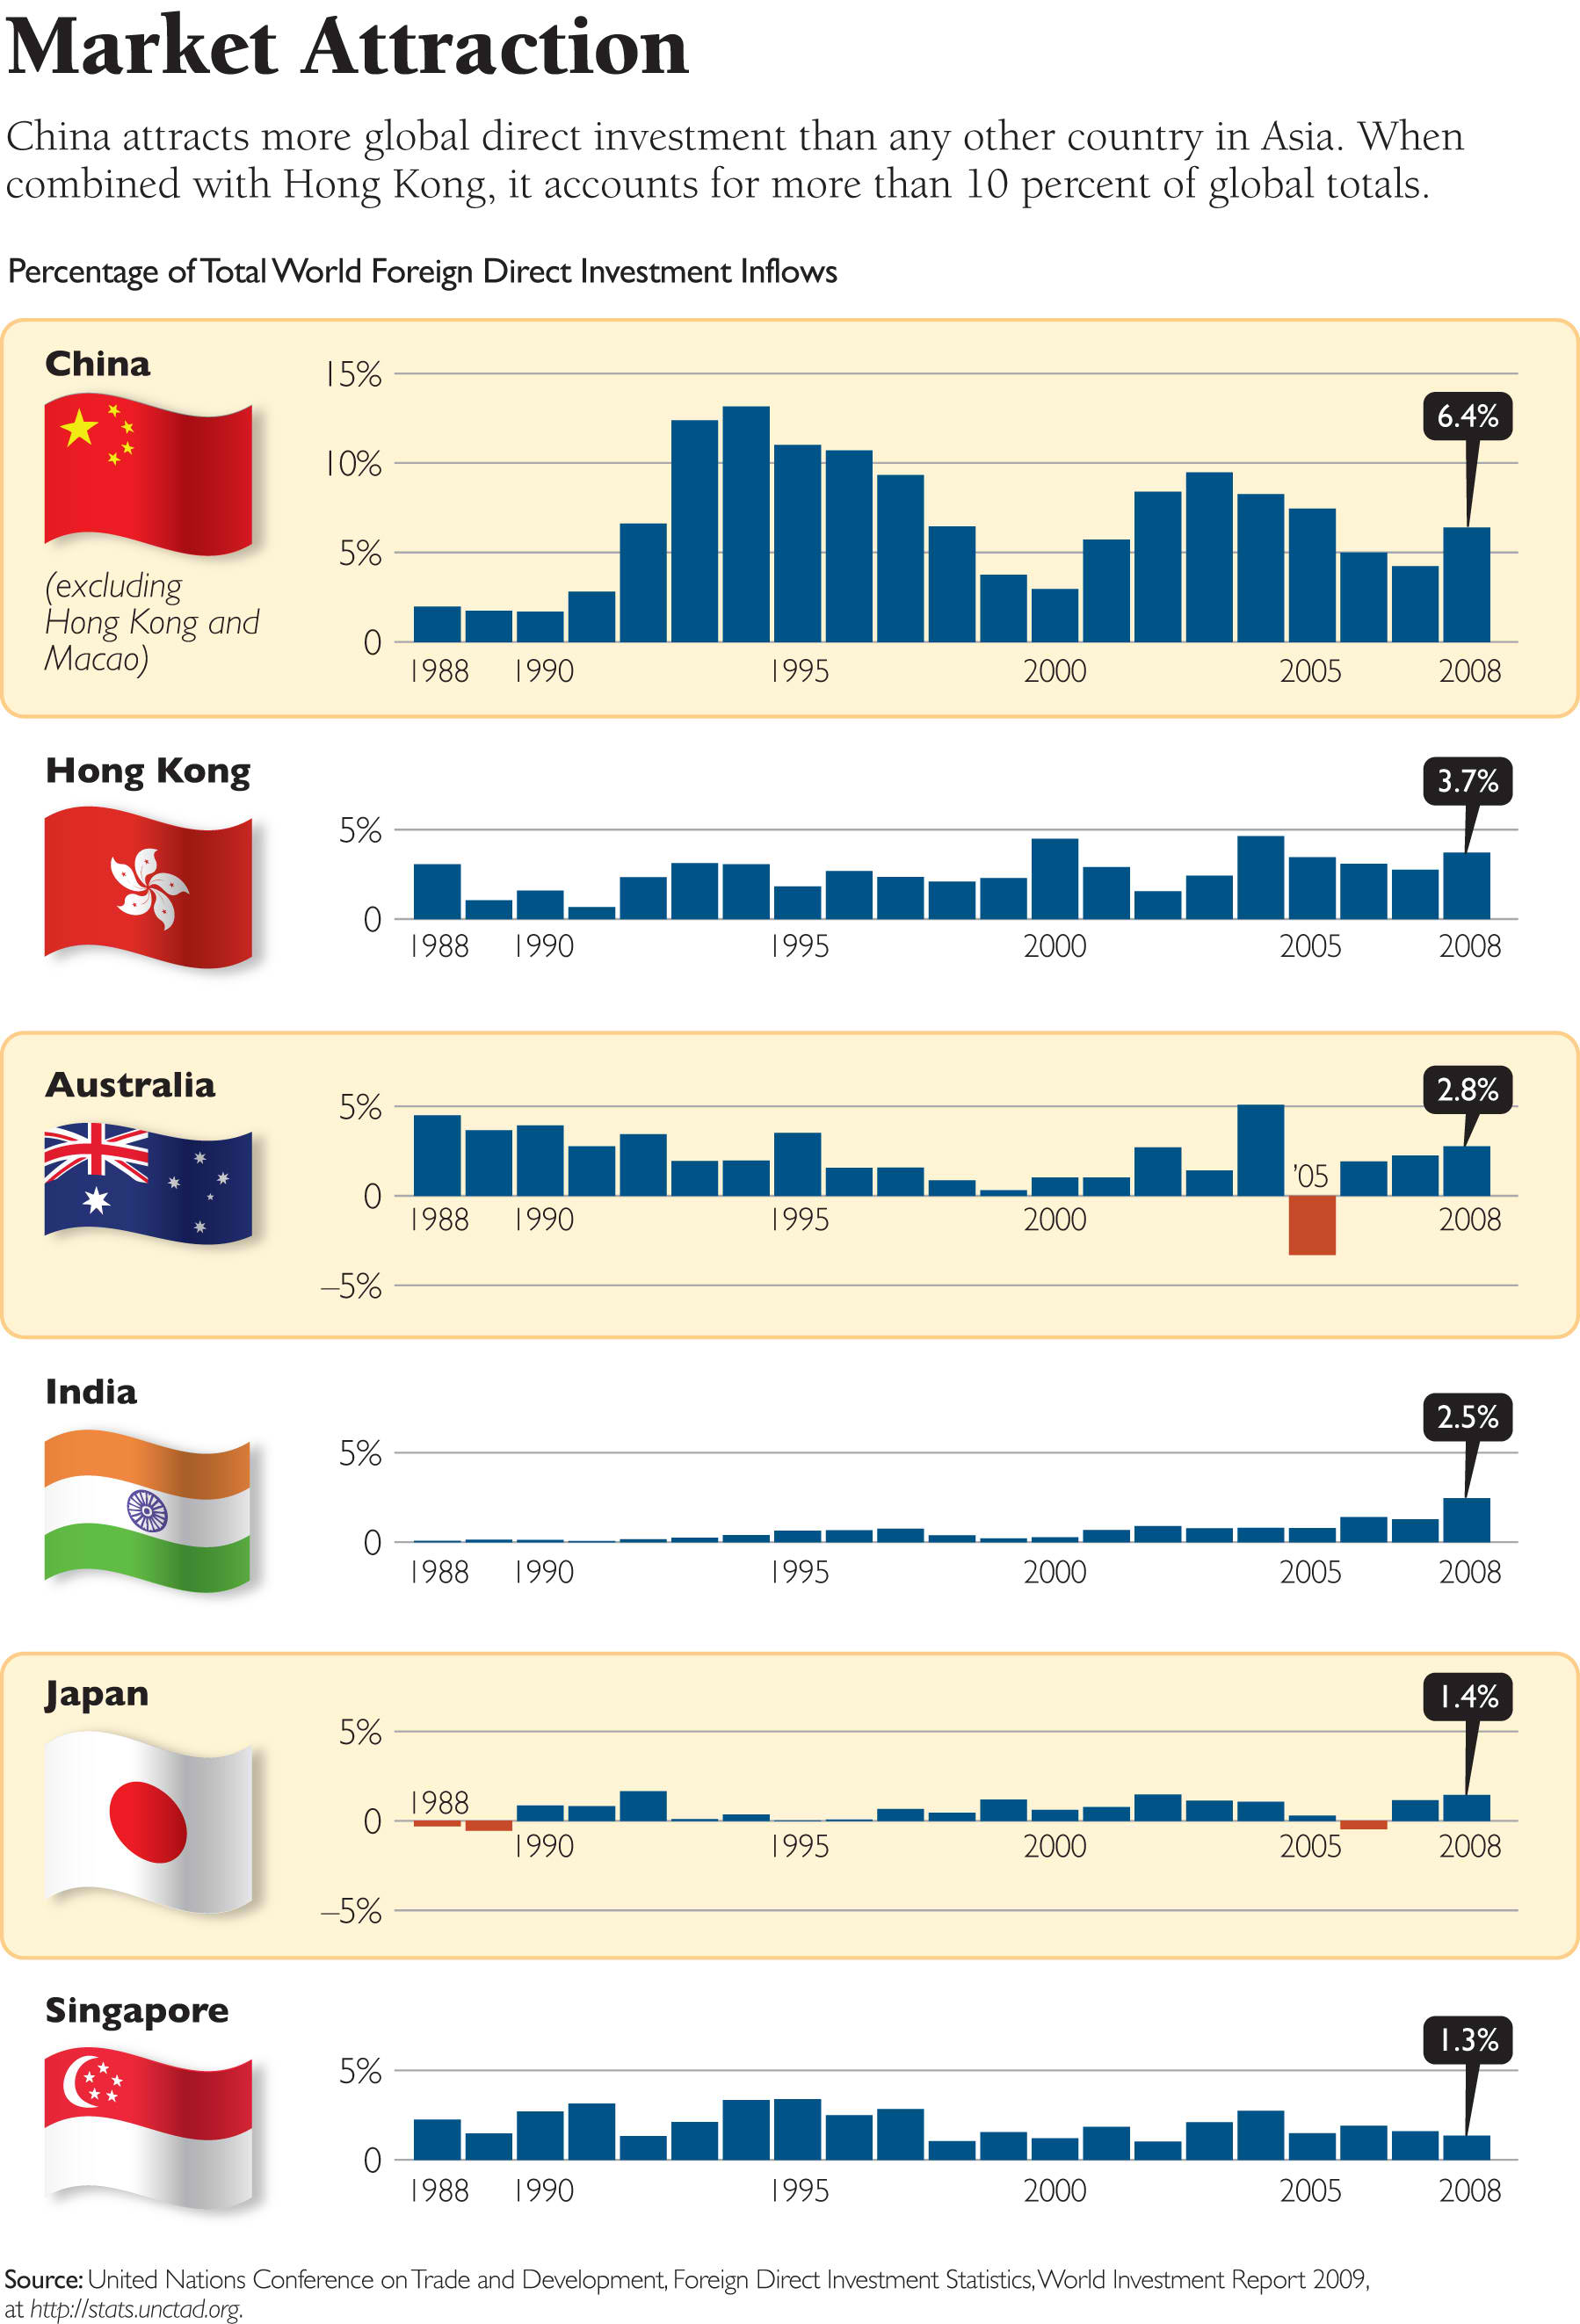 fdi inflow in china 2 1 introduction the growth of foreign direct investment (fdi) in china has experienced dramatic changes since the beginning of the economic reform in the late 1970s.